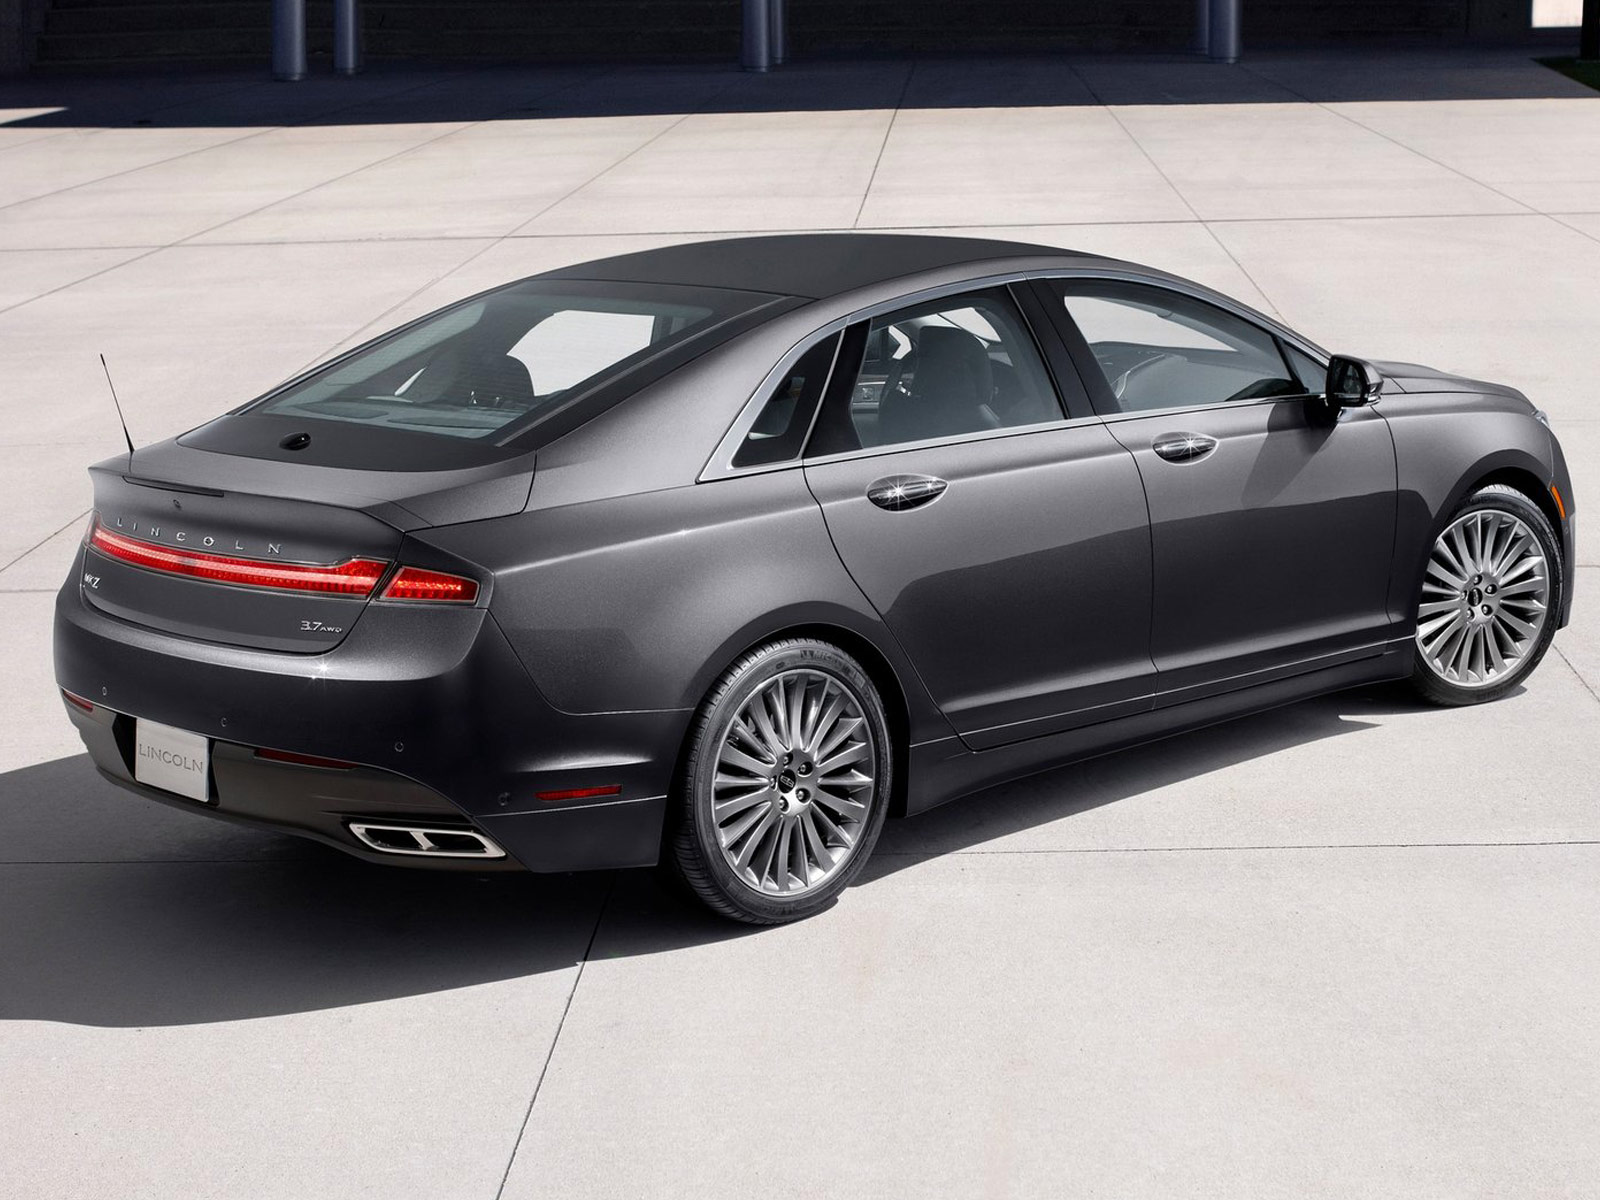 [Image: 2013-Lincoln-MKZ_car-pictures-collection_4.jpg]